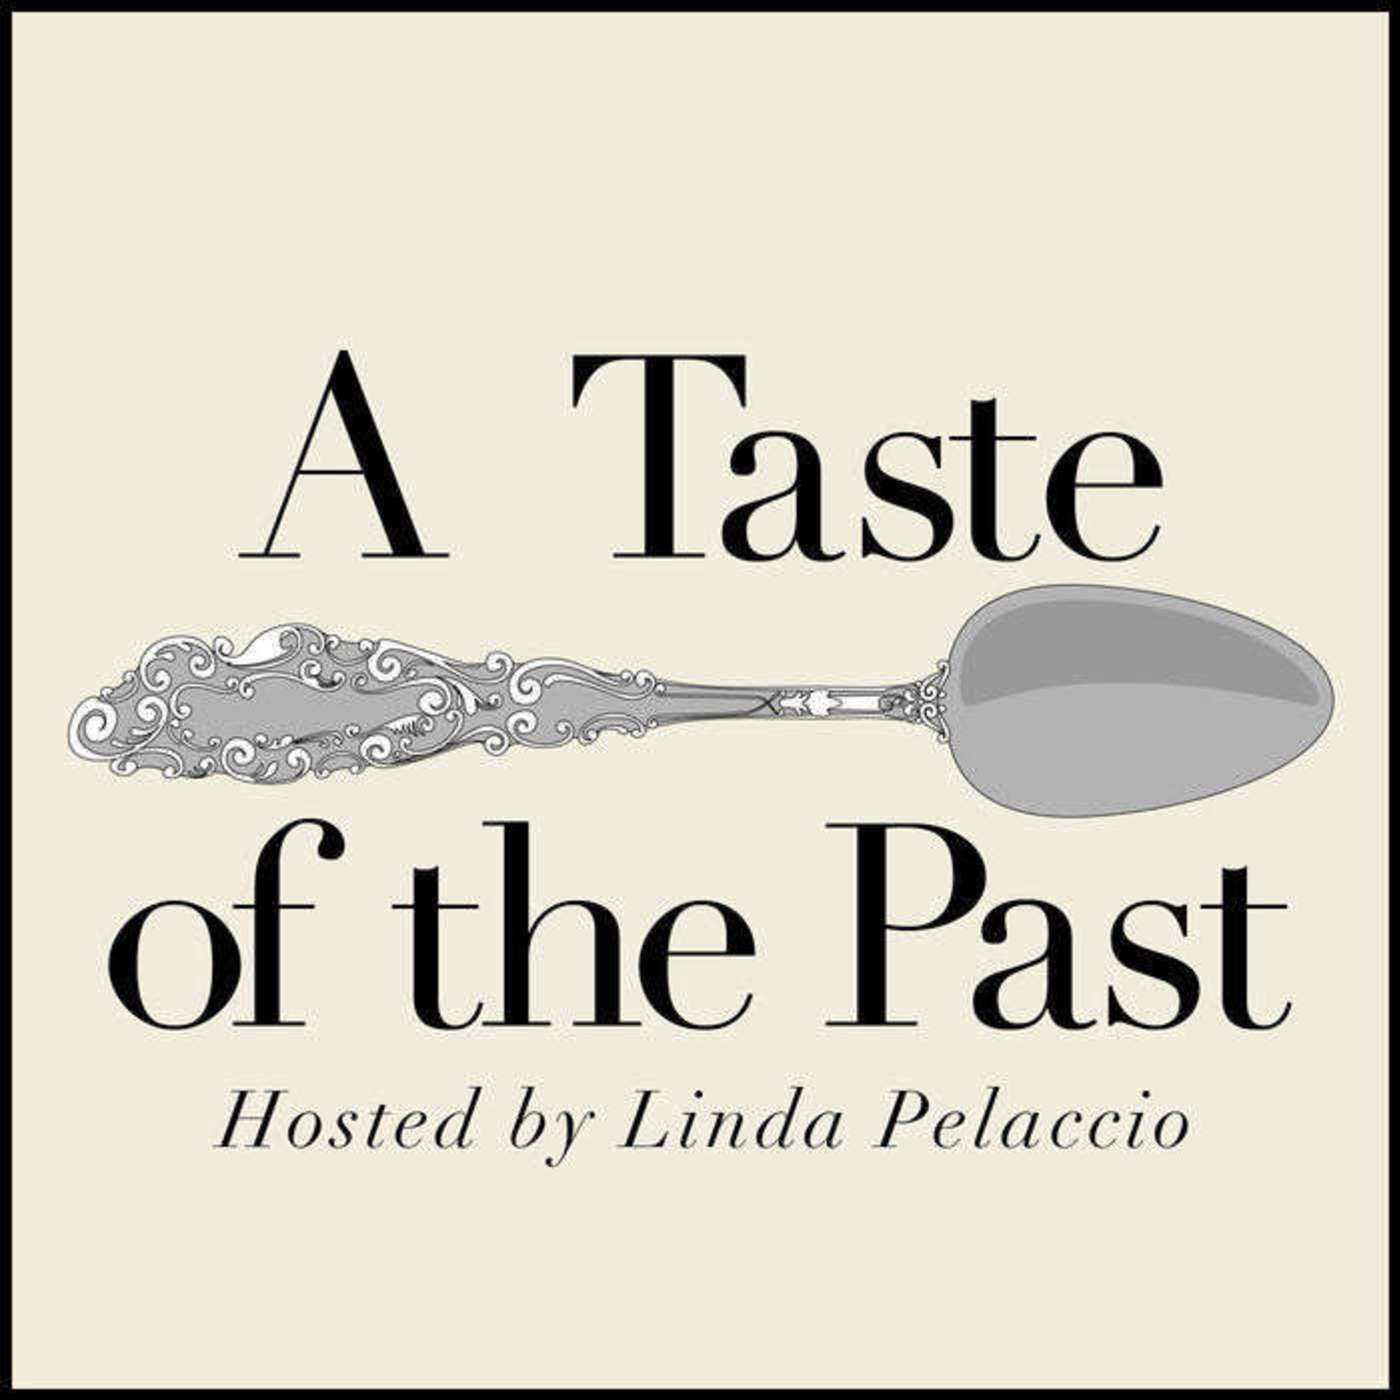 Episode 59: The Potato: How it Changed the World